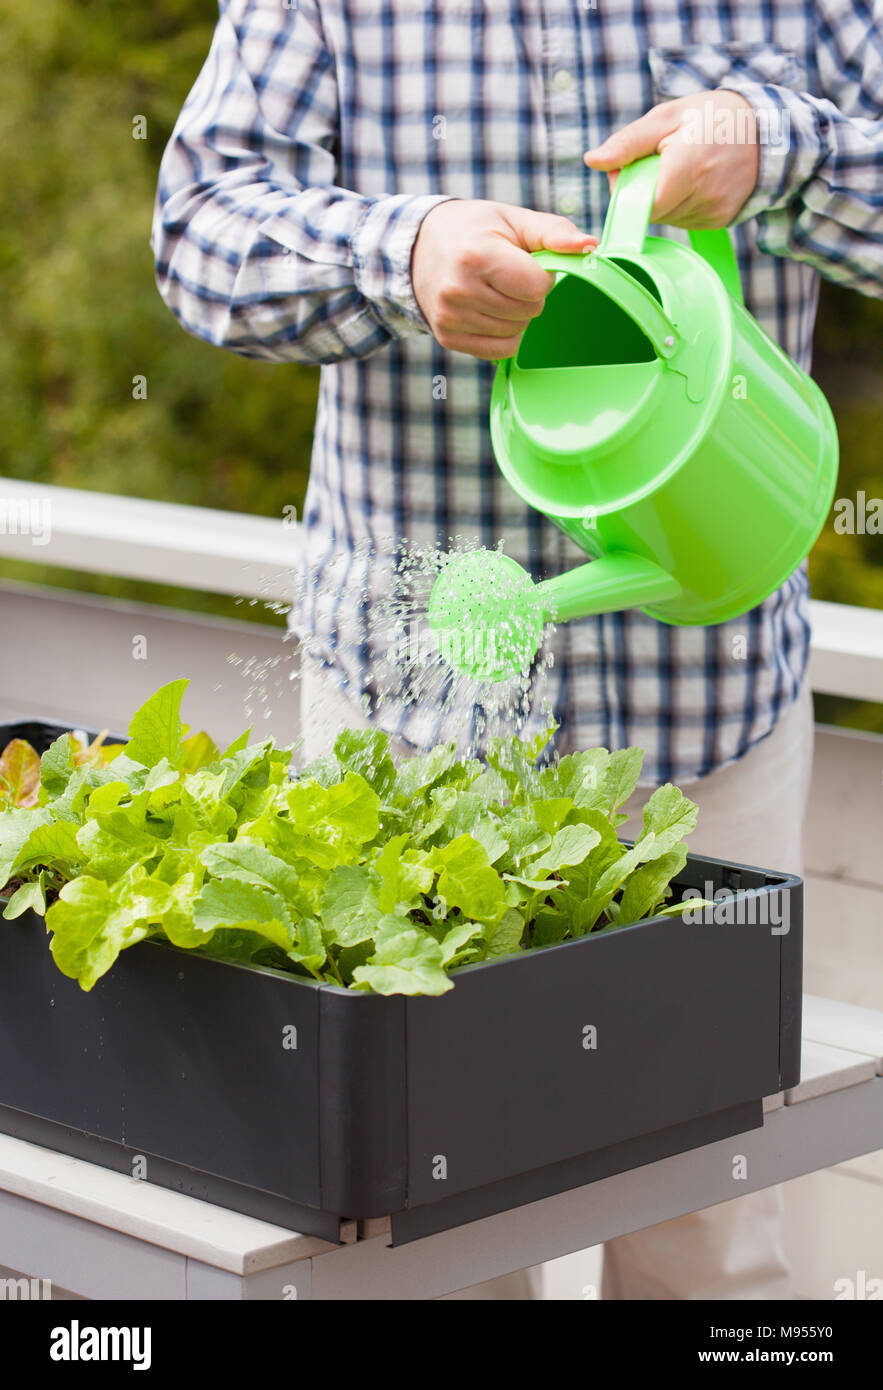 man watering vegetable garden in container on balcony - Stock Image